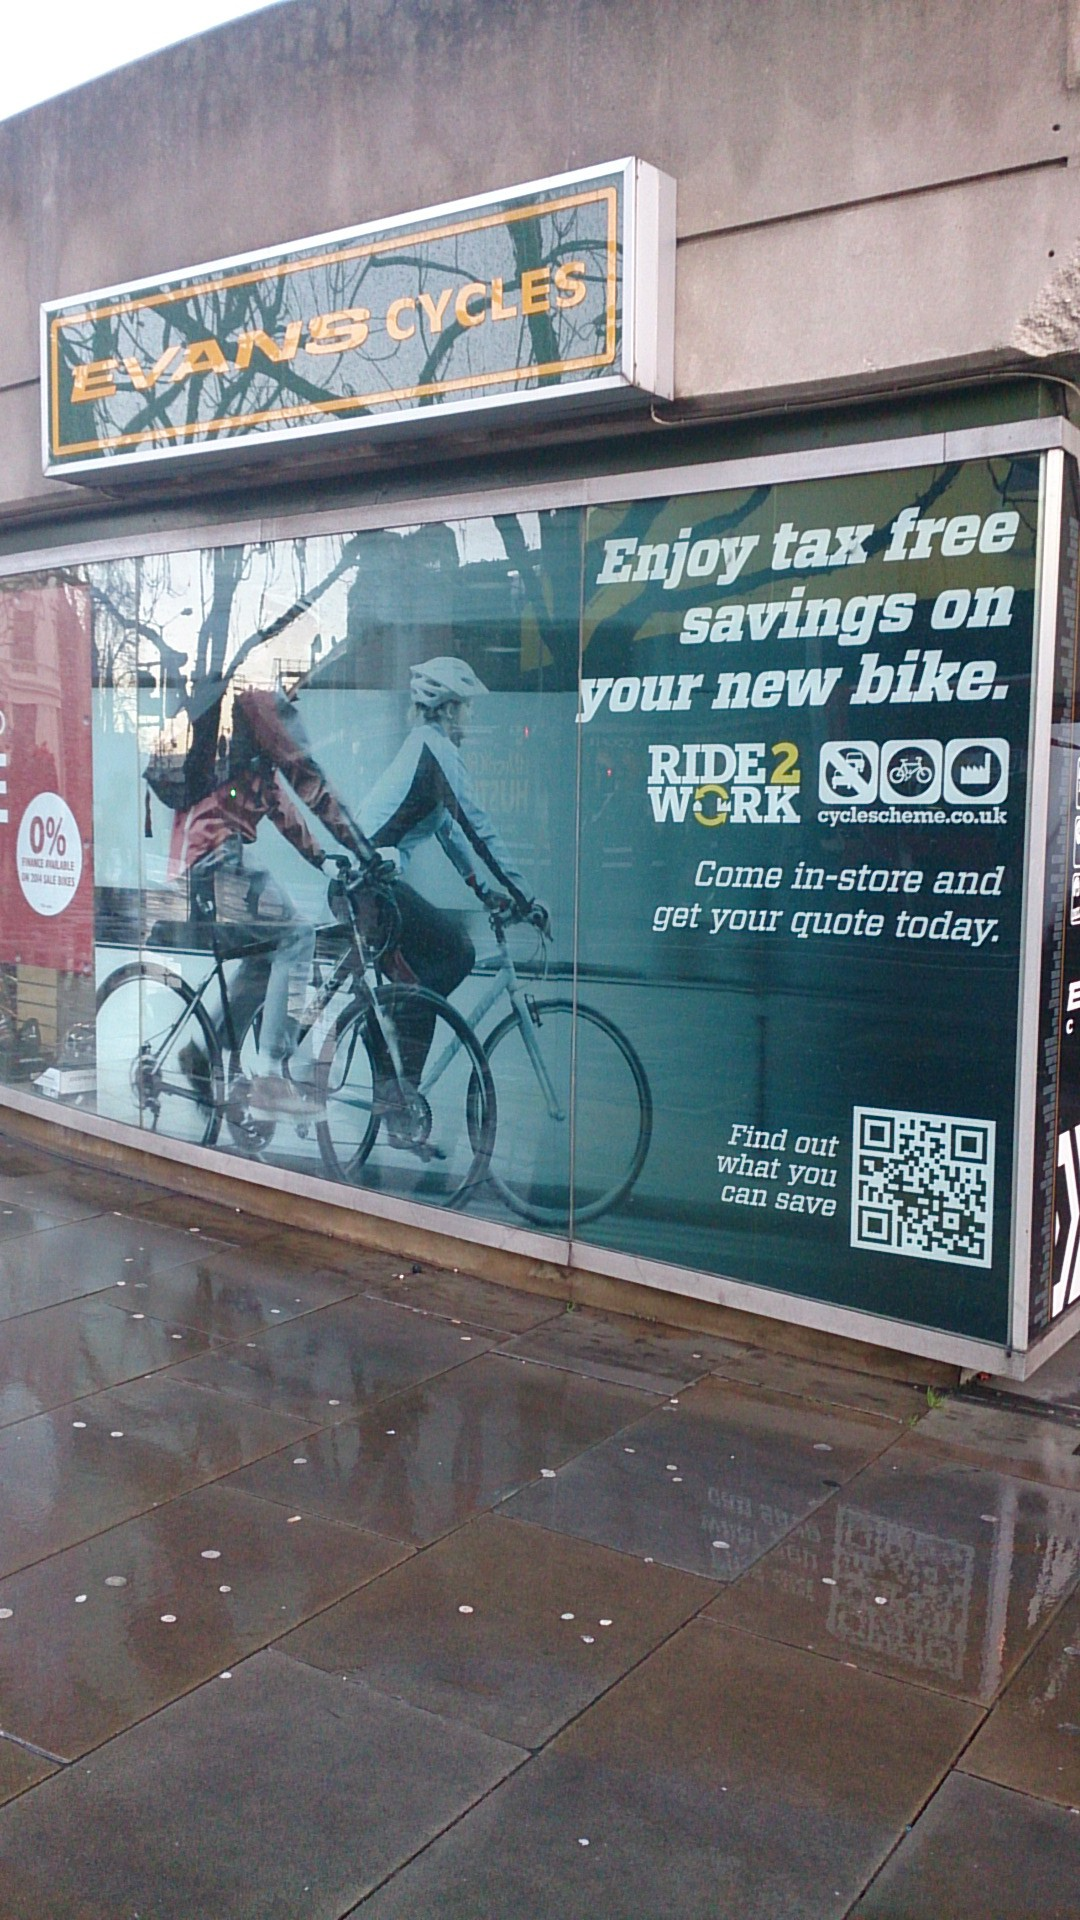 Mobile Marketing in the Wild: Evans Cycles